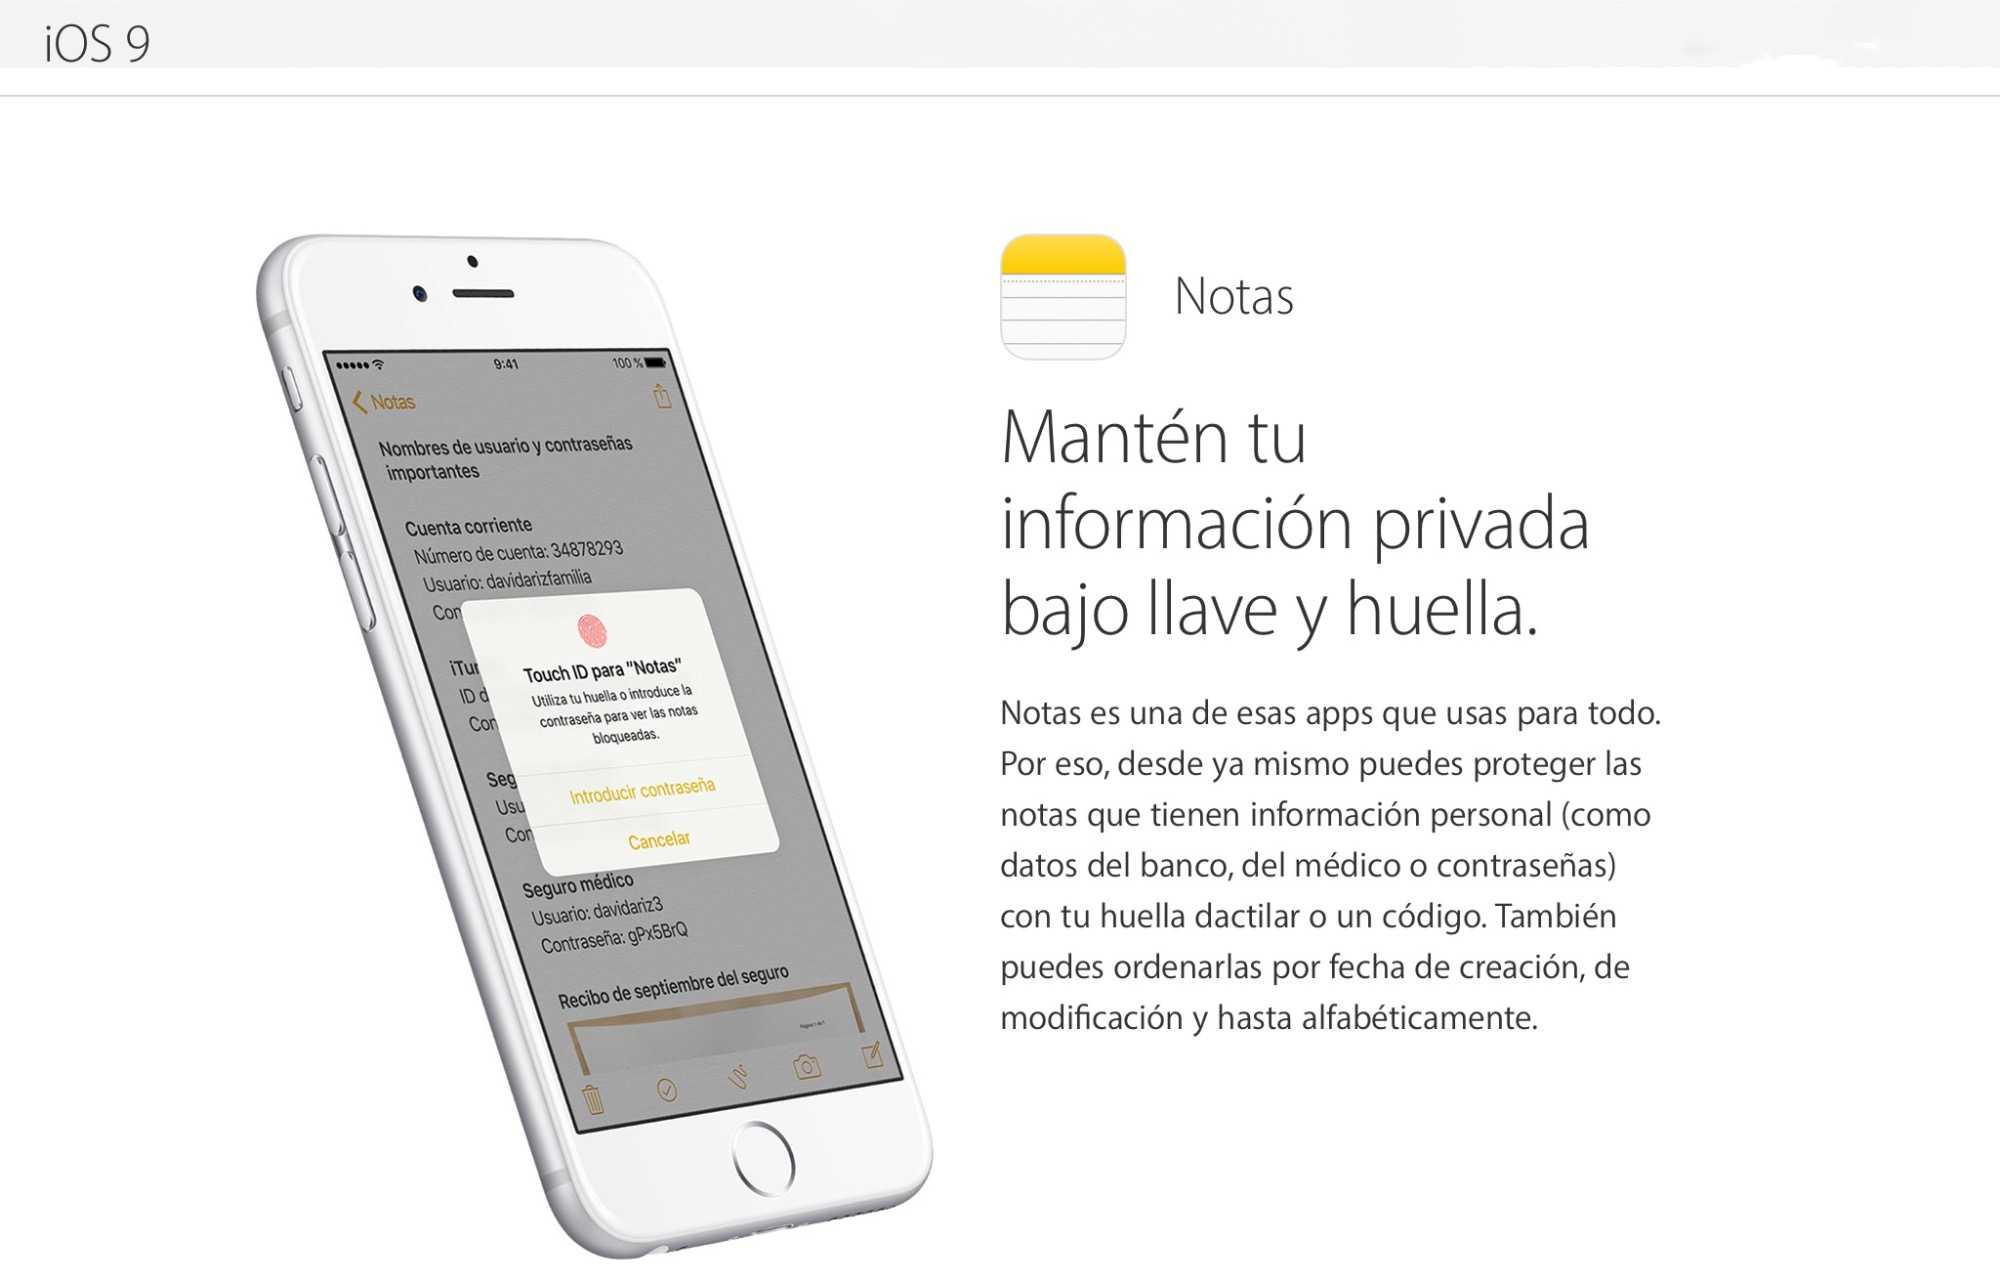 http://hablandodemanzanas.com/sites/default/files/Imagen-Apple-iOS%209.3-Notas-protegidas.jpg